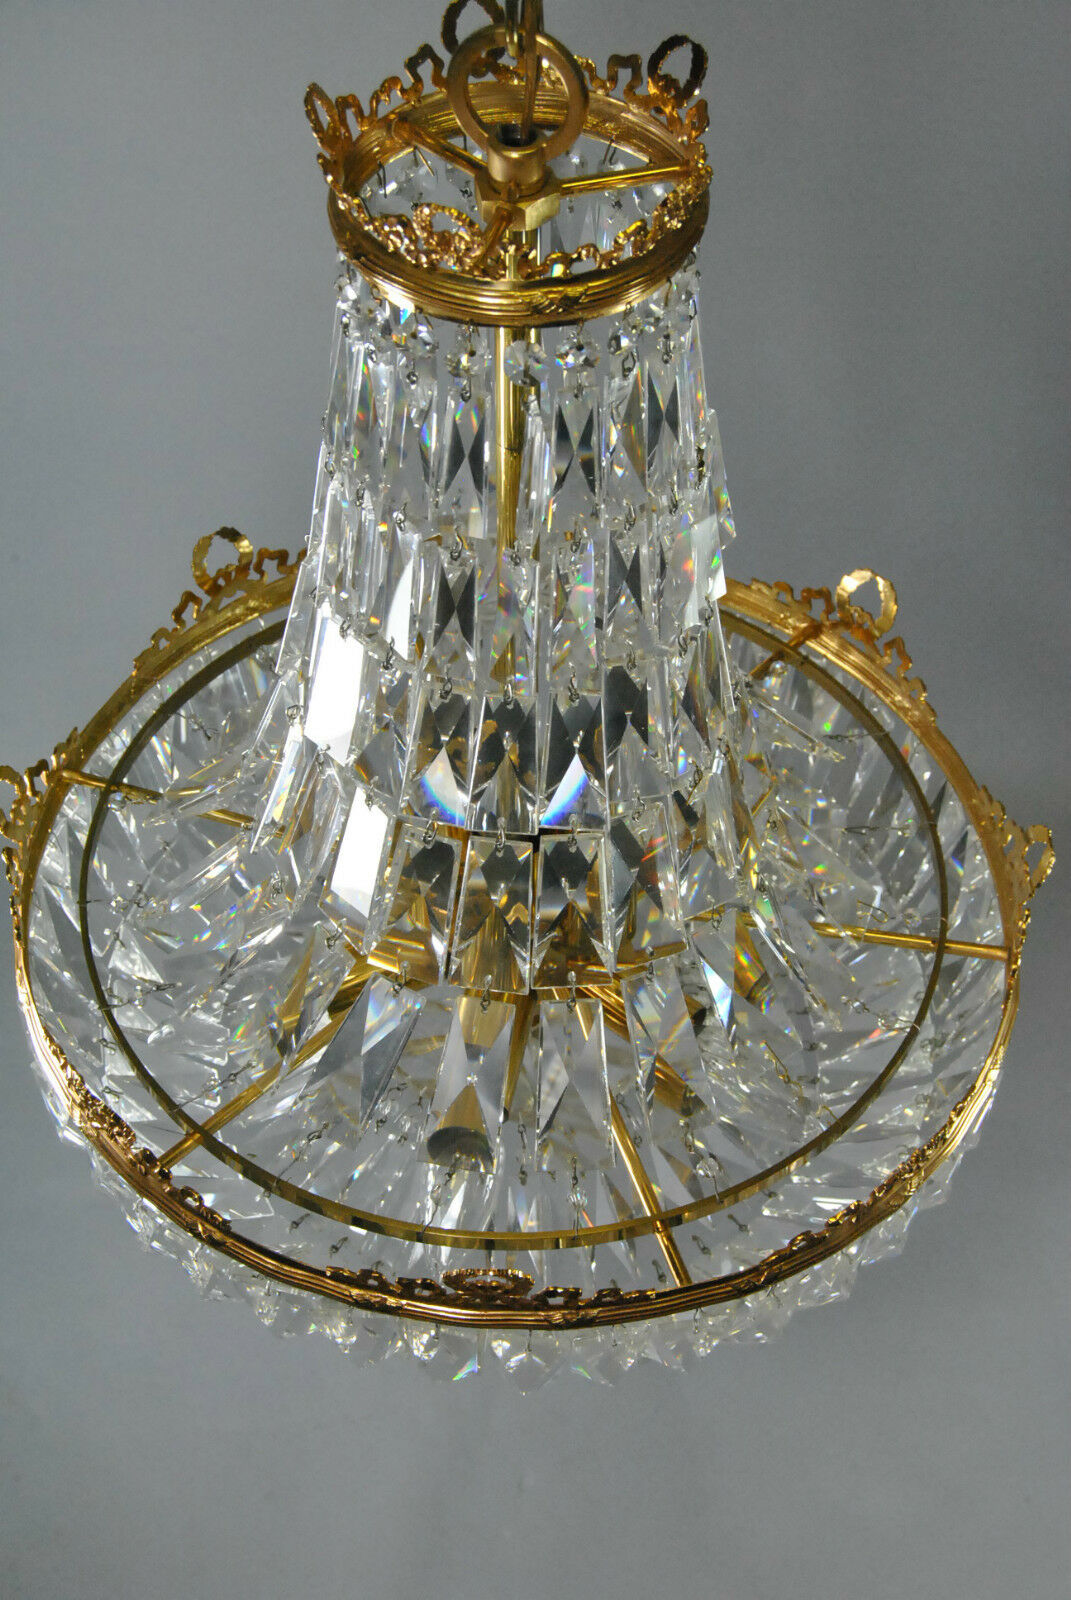 clayton mobile home wiring diagram french basket form crystal chandelier with brass frame #15